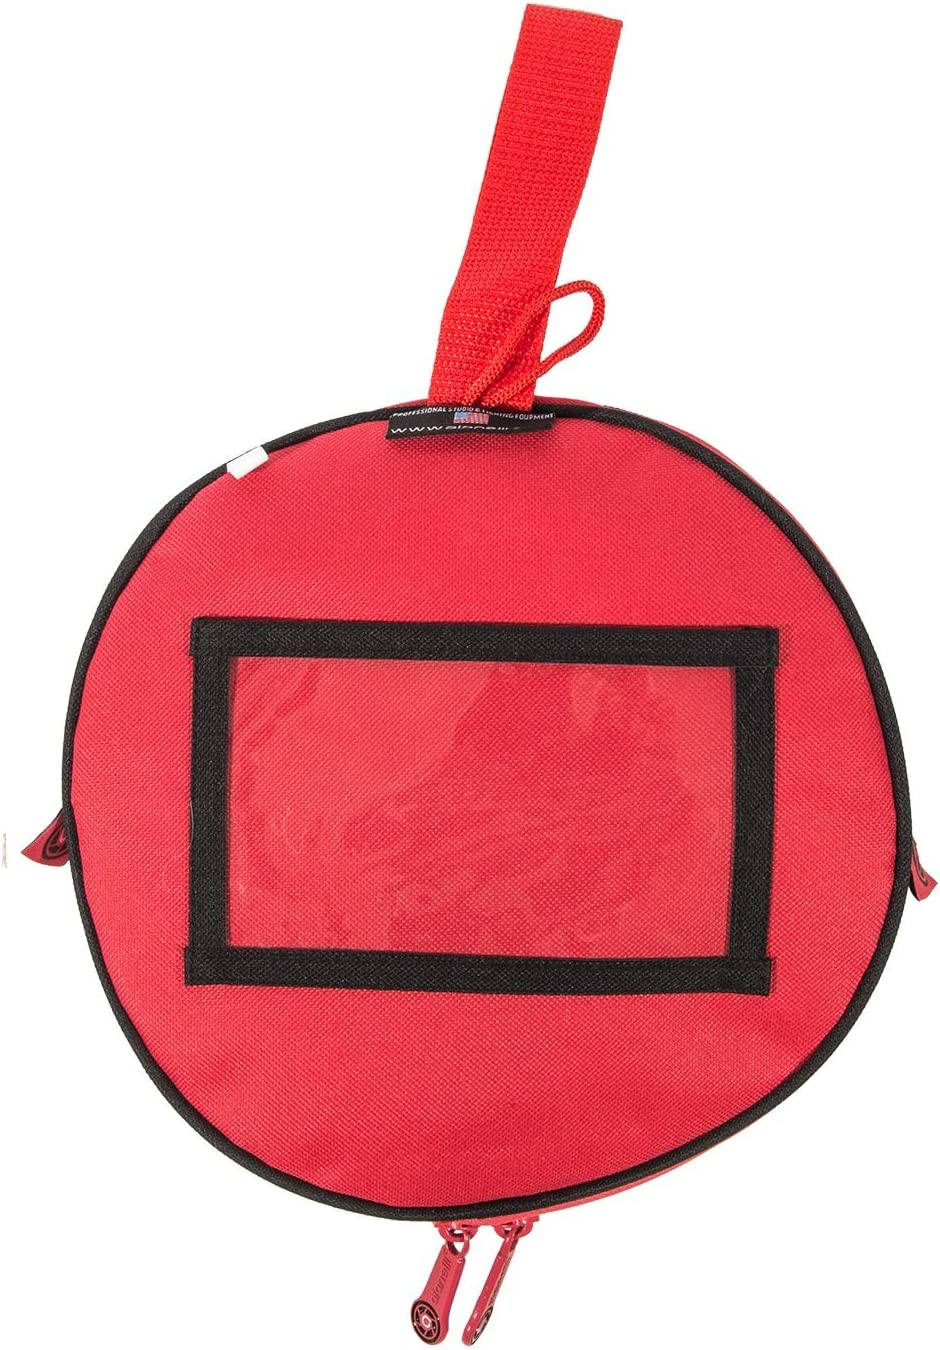 22 5-in-1 Circular Collapsible Reflector by Alanelli